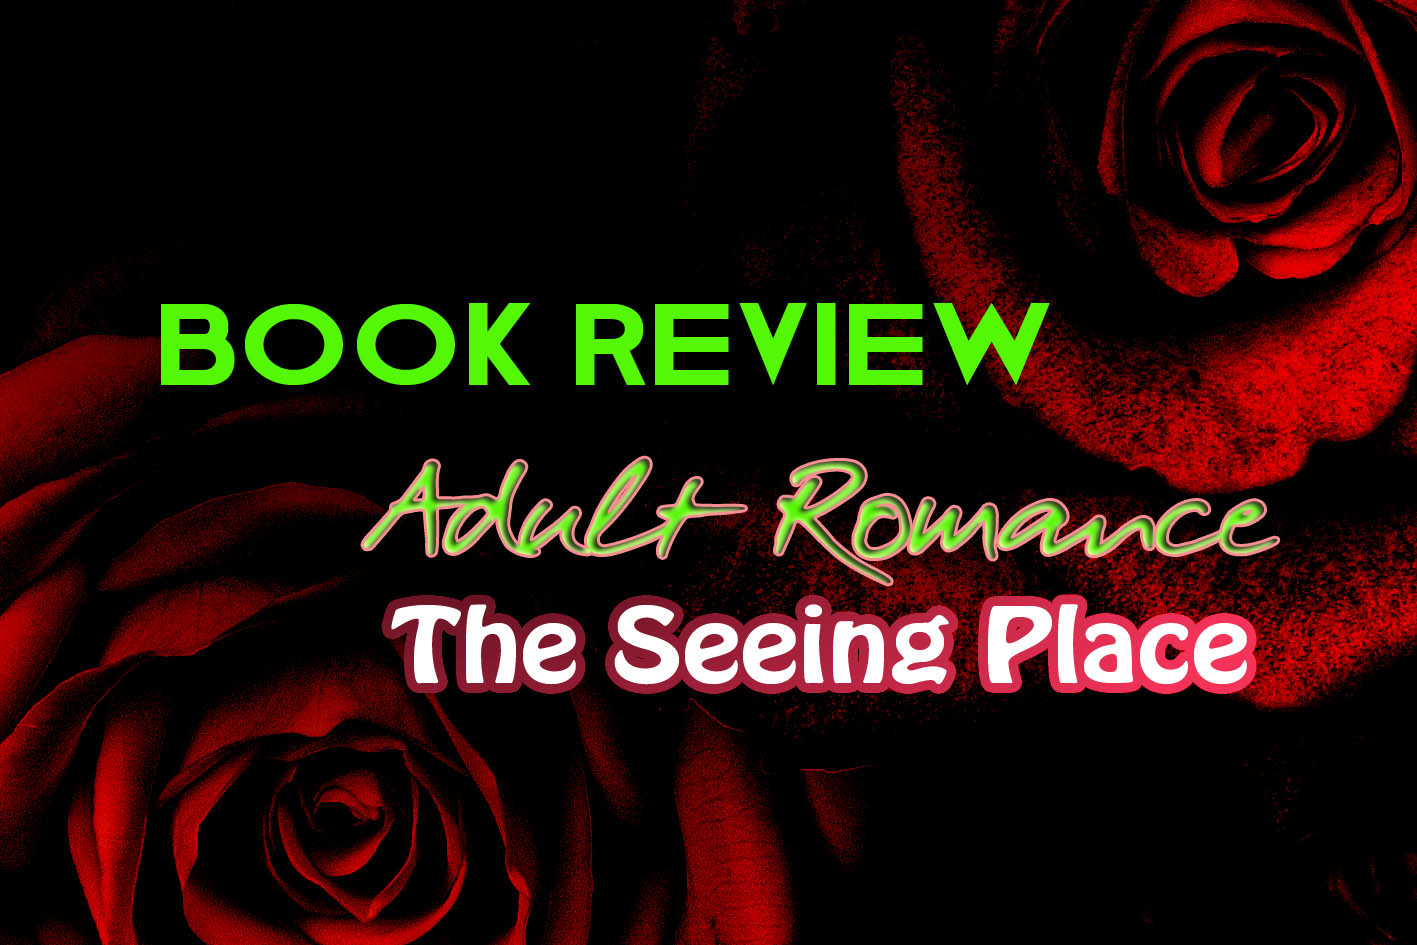 Book Review: The Seeing Place